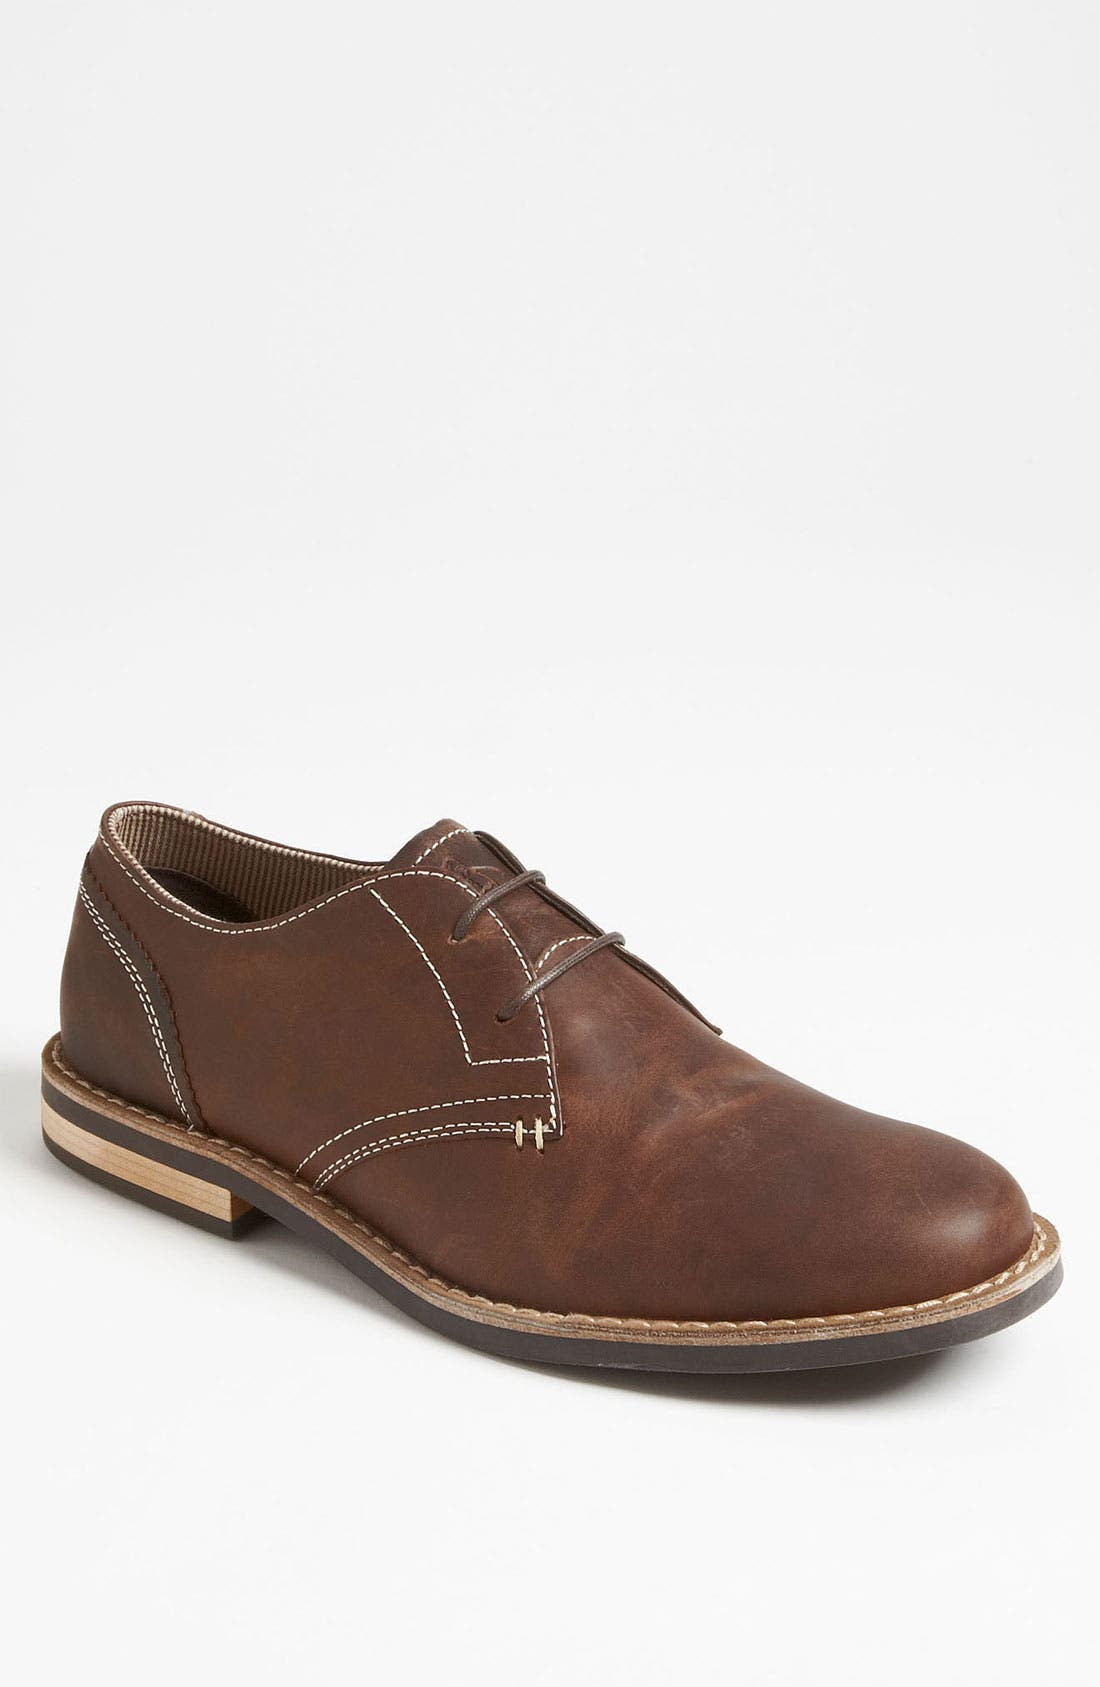 Main Image - Original Penguin 'Waylon' Buck Shoe